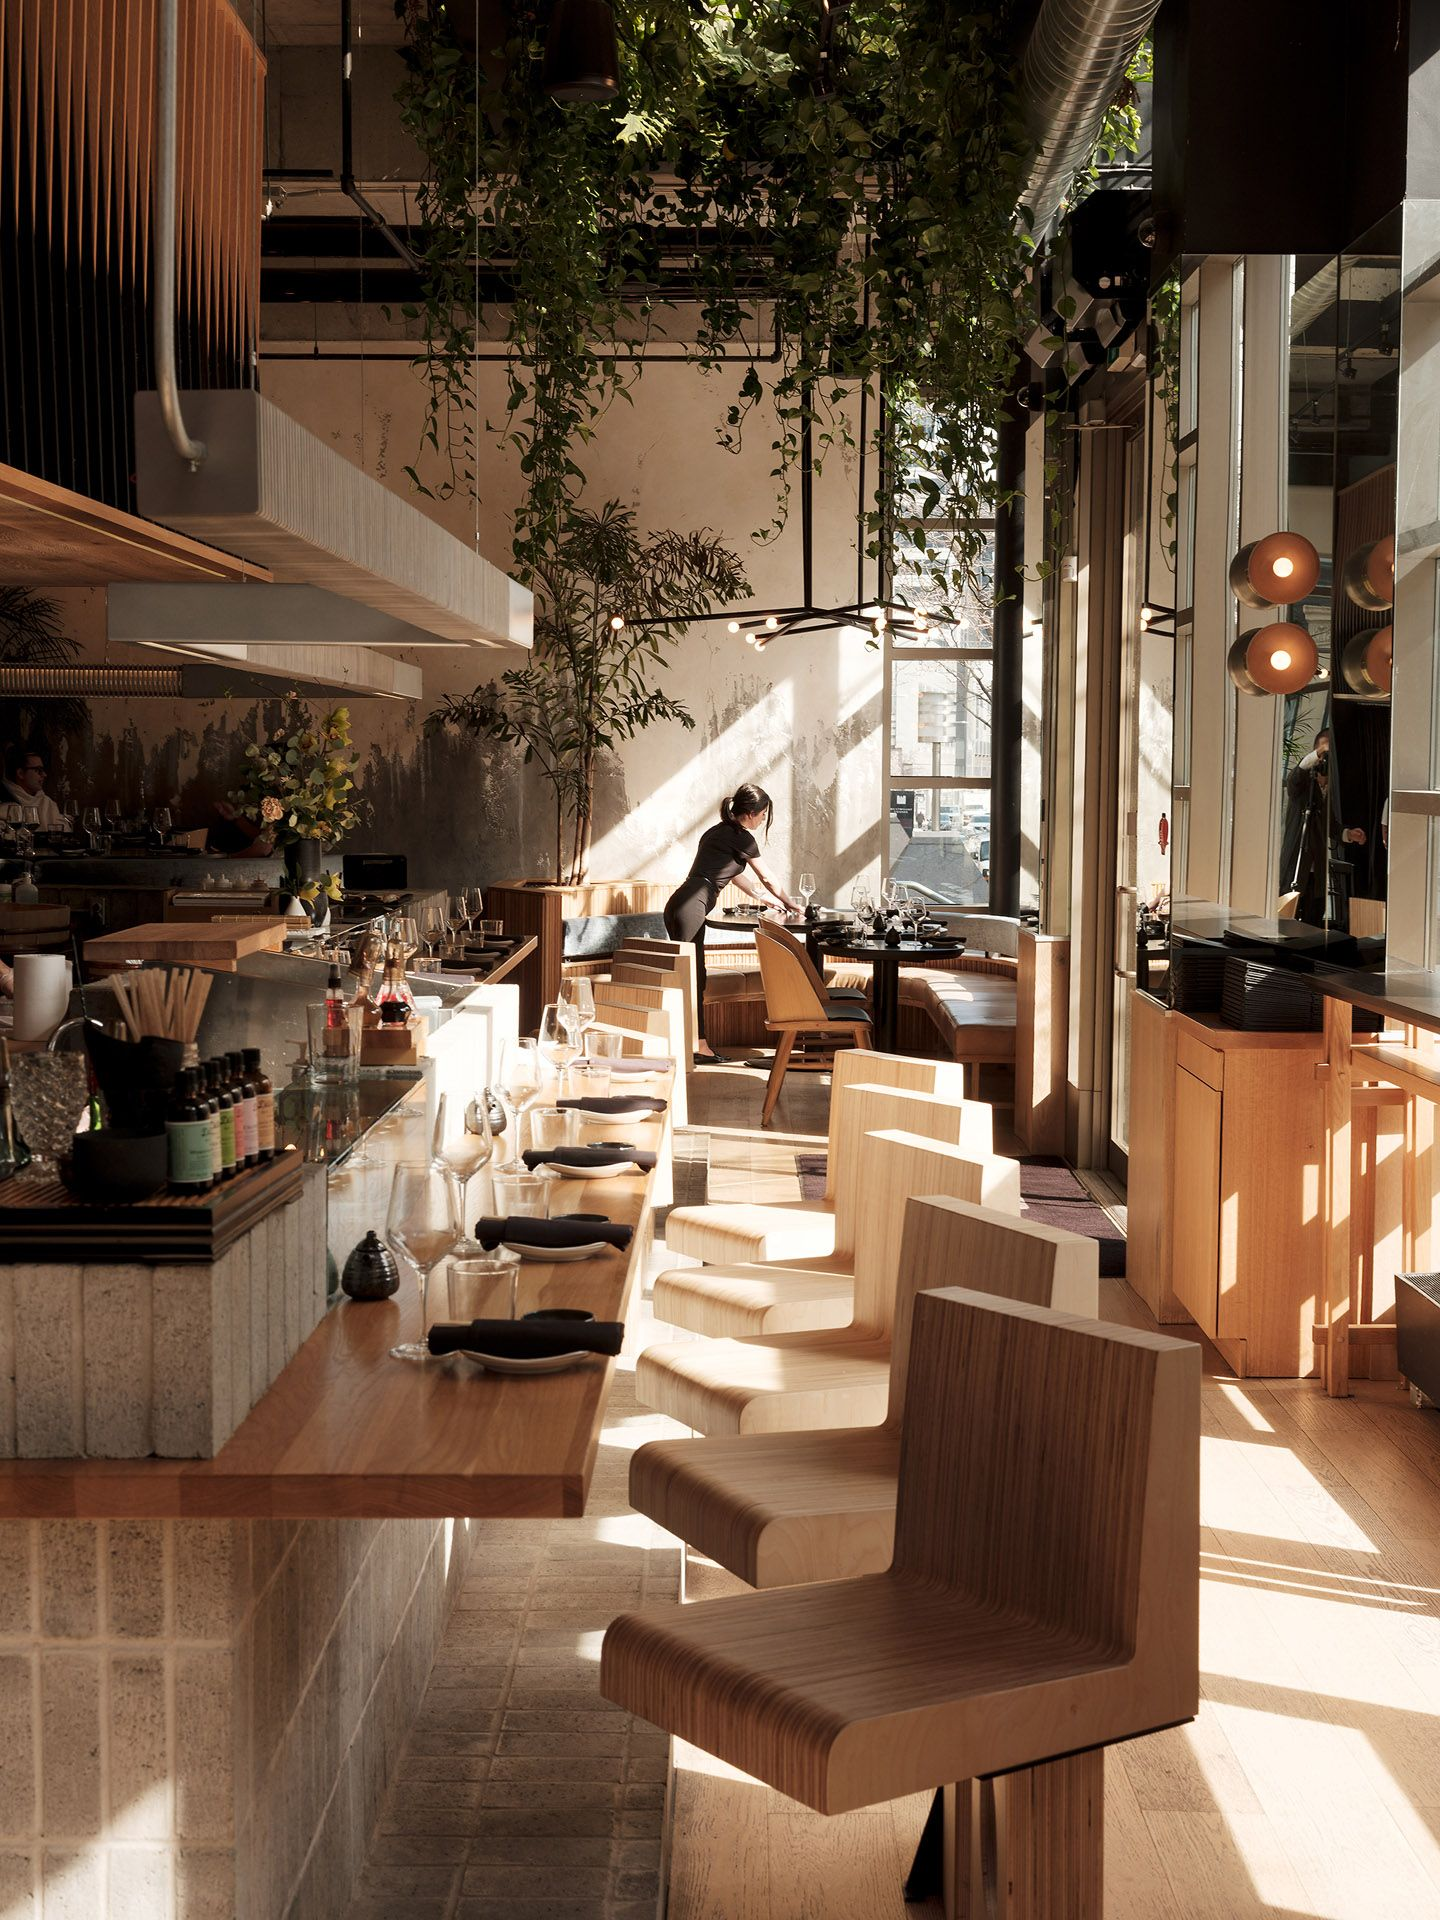 interior of high-en cafe with waitress setting up tables early in the morning by Guillaume Simoneau at MRDK for NUVO